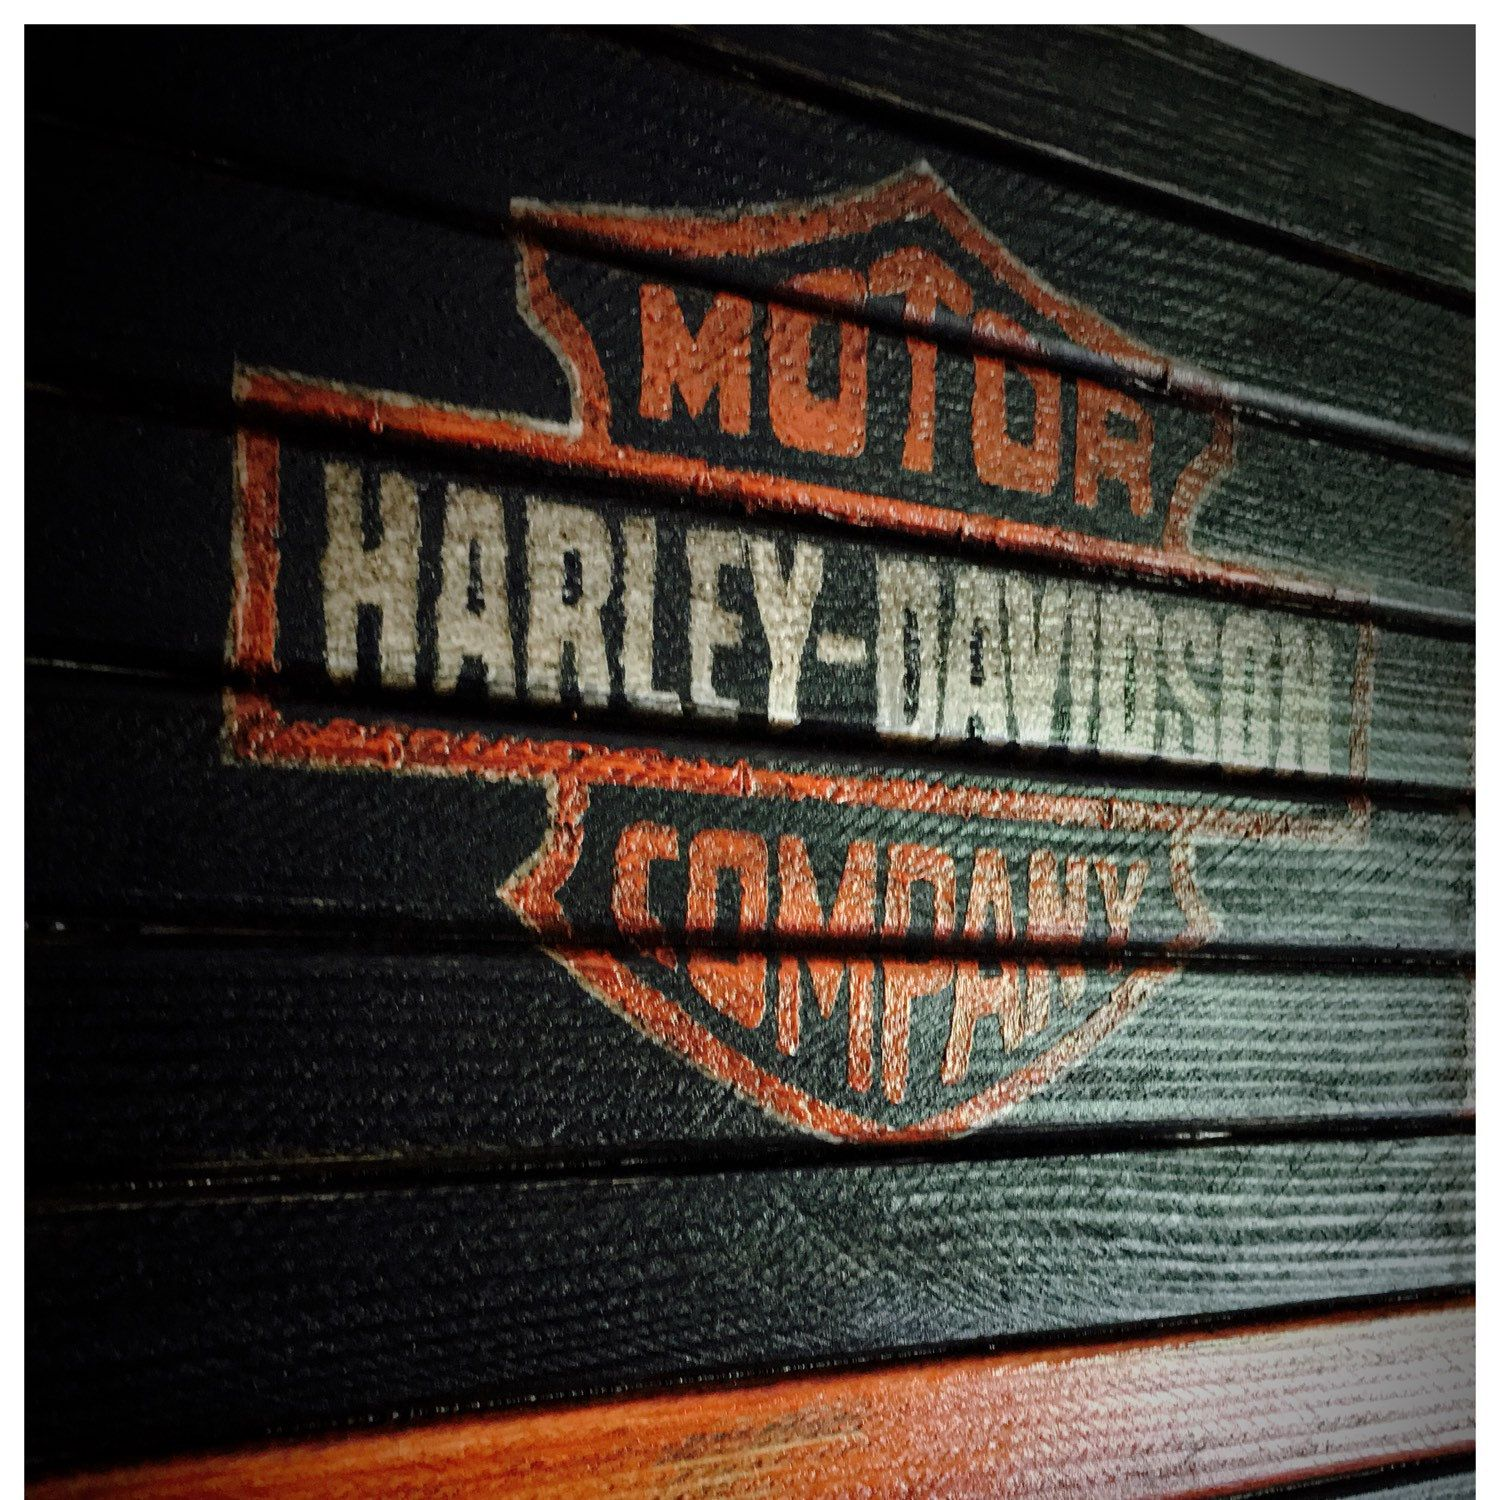 Just recently added this Harley Davidson flag sign Have had many requests to make this